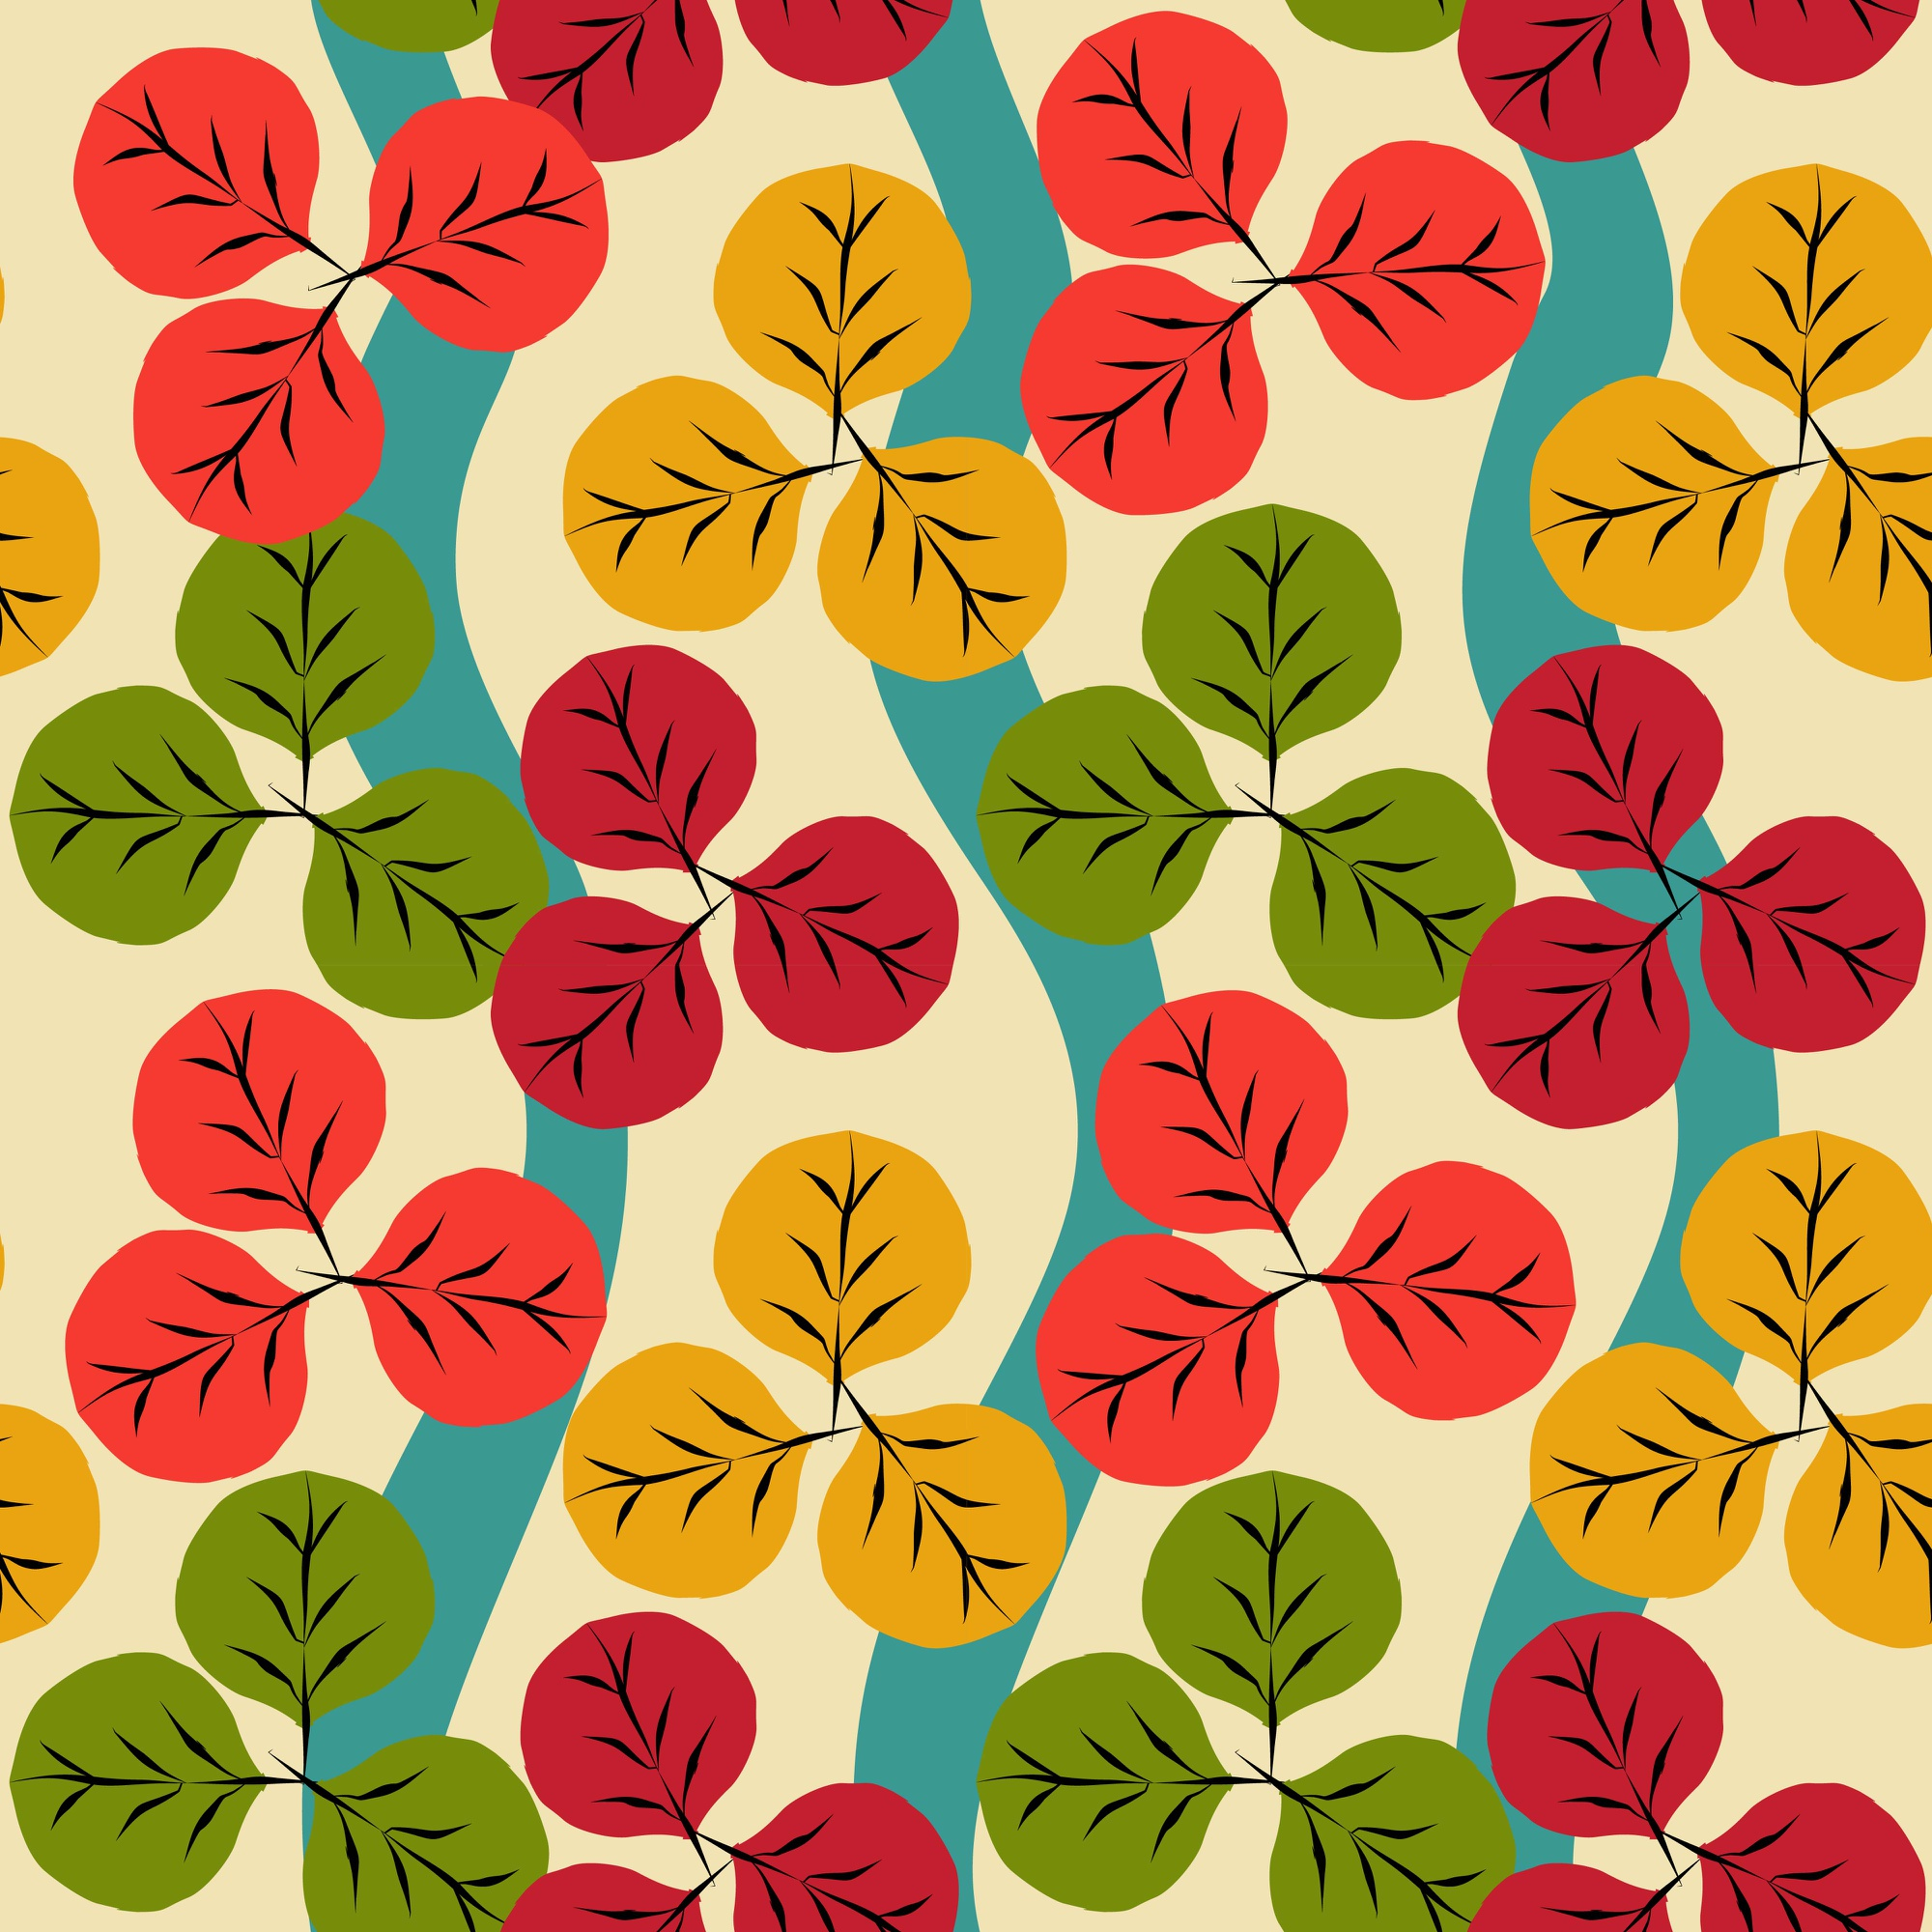 Seamless pattern of autumn with red, yellow, and green